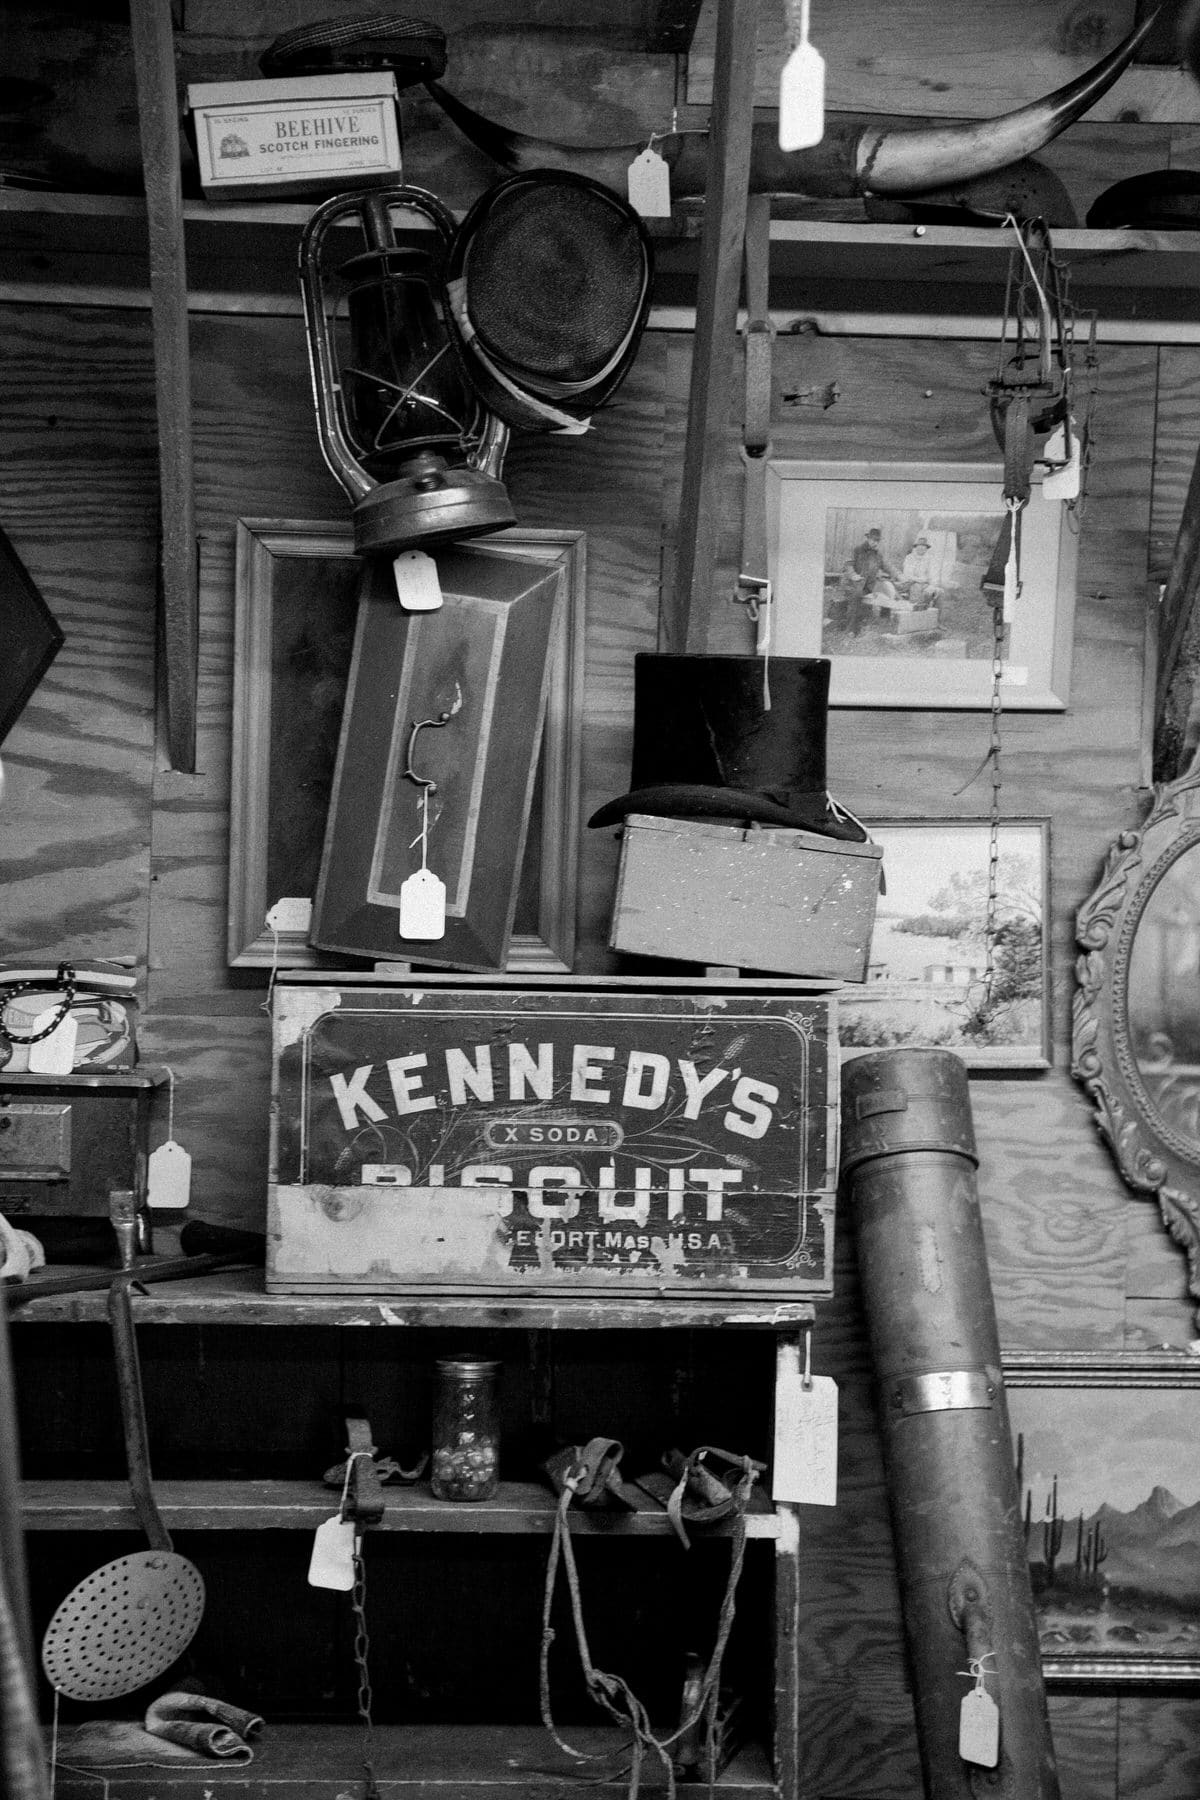 Maine-flea-market-black-and-white-fine-art-photography-by-Studio-L-photographer-Laura-Schneider-_5726